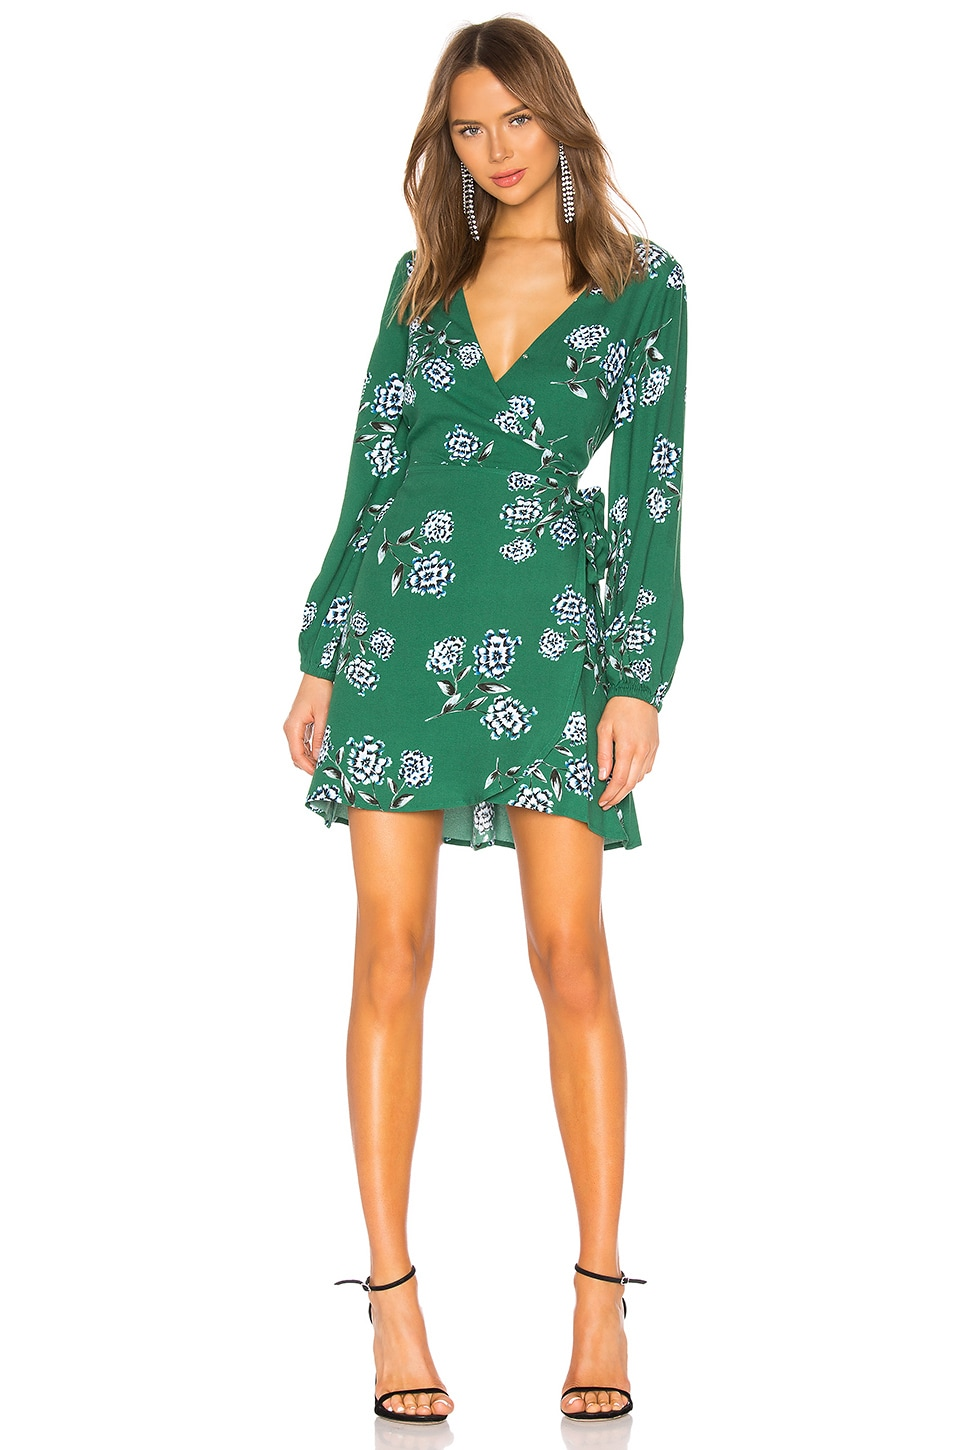 Cupcakes And Cashmere Dresses Mystique Wrap Dress